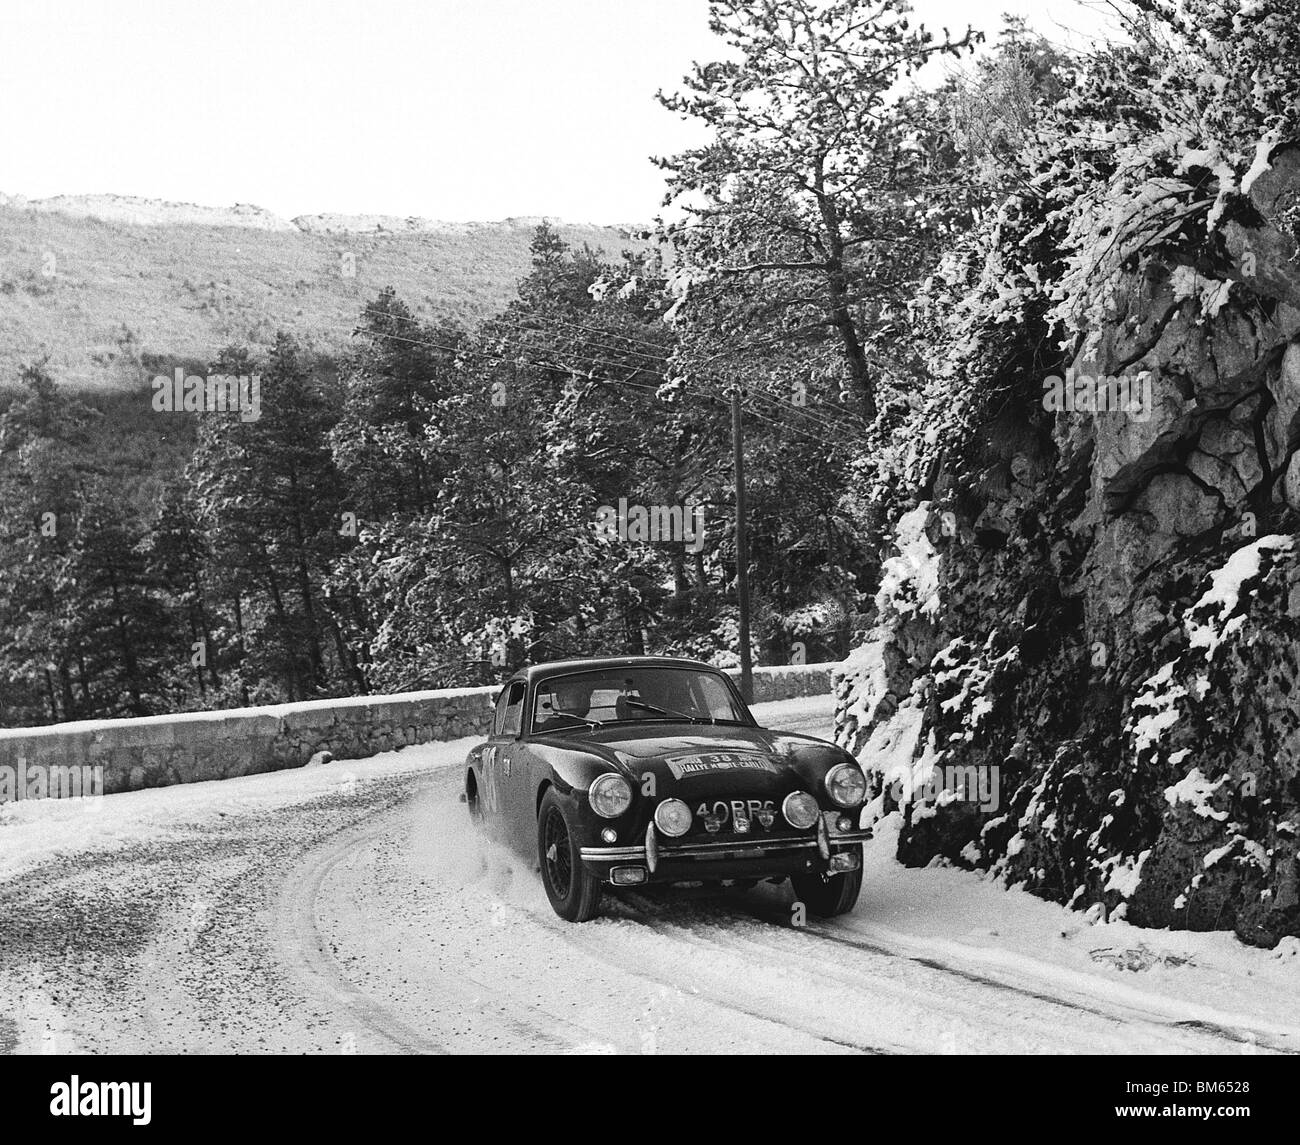 AC Aceca driven by T. Clarke on the 1958 Monte Carlo rally - Stock Image